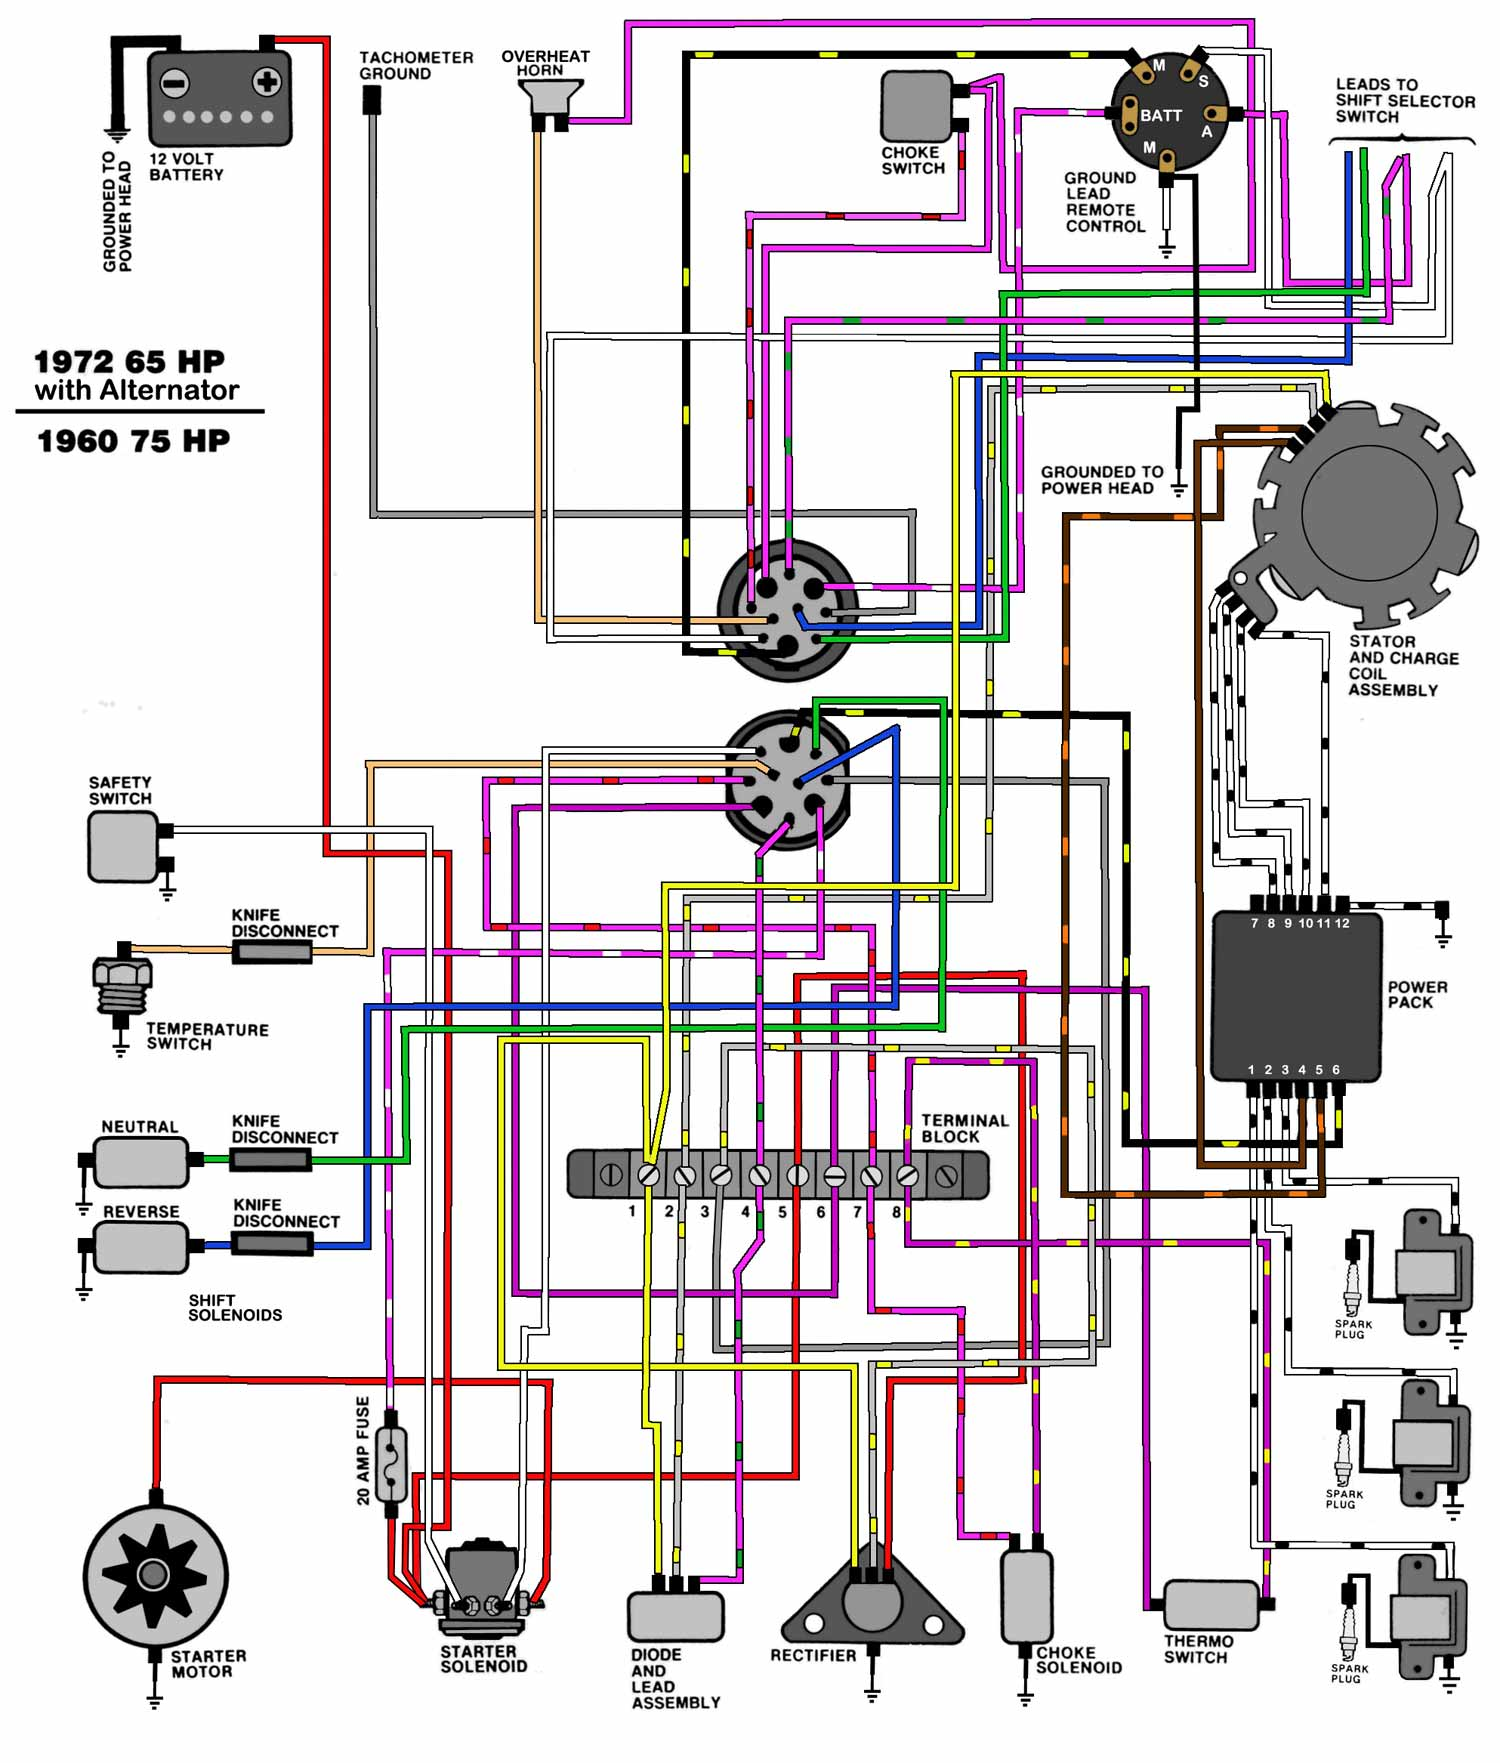 1994 Evinrude 175 Wiring Diagrams | Wiring Liry on chevrolet wiring diagram, 96 evinrude wiring diagram, chris craft wiring diagram, regal wiring diagram, sears wiring diagram, 1972 50 hp evinrude wiring diagram, ace wiring diagram, nissan wiring diagram, apc wiring diagram, omg wiring diagram, evinrude key switch wiring diagram, clark wiring diagram, johnson wiring diagram, viking wiring diagram, omc schematic diagrams, john deere wiring diagram, atlas wiring diagram, polaris wiring diagram, sea ray wiring diagram,